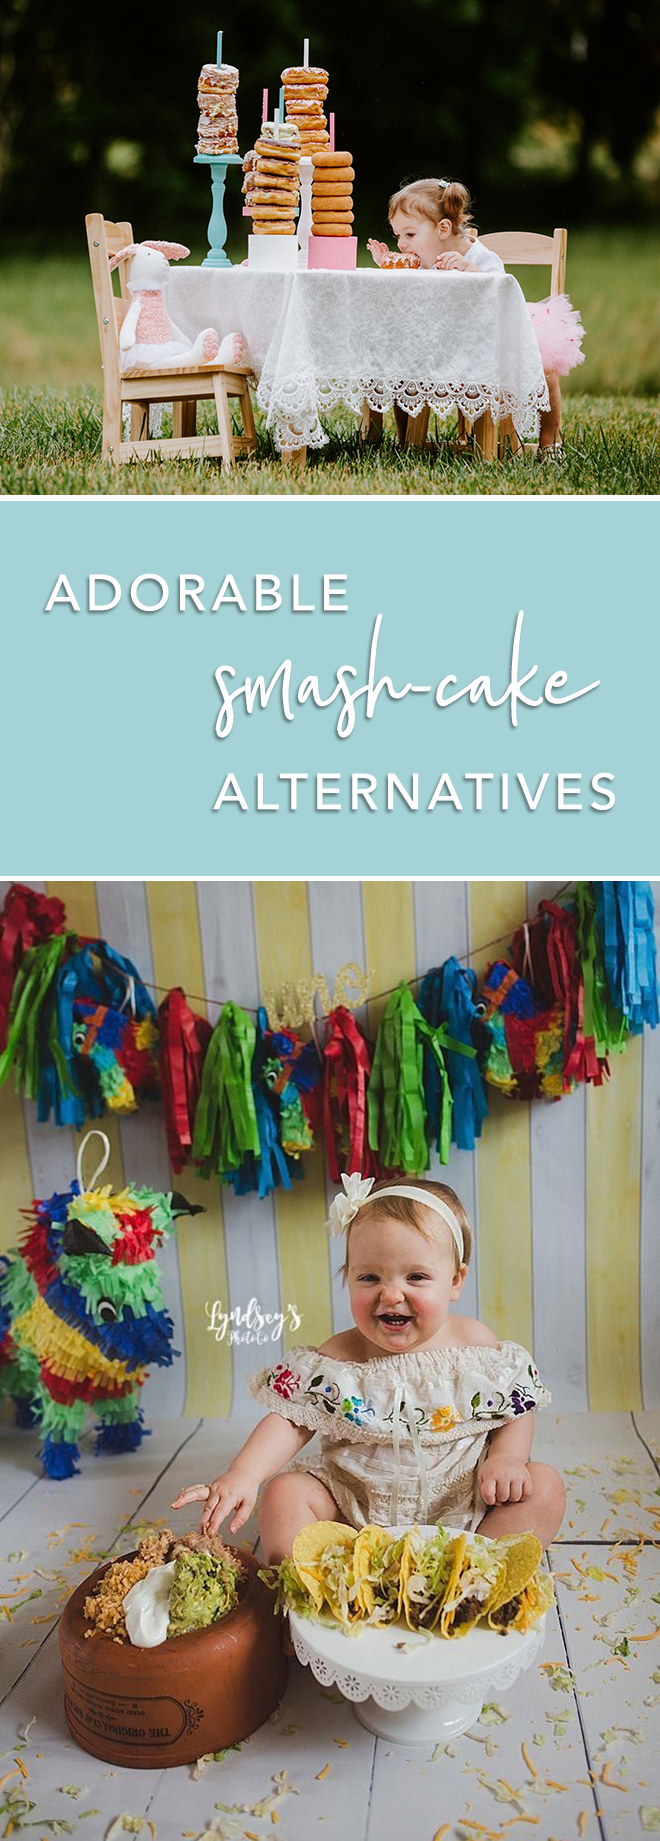 """Adorable """"smash-cake"""" alternatives for your babies first birthday"""